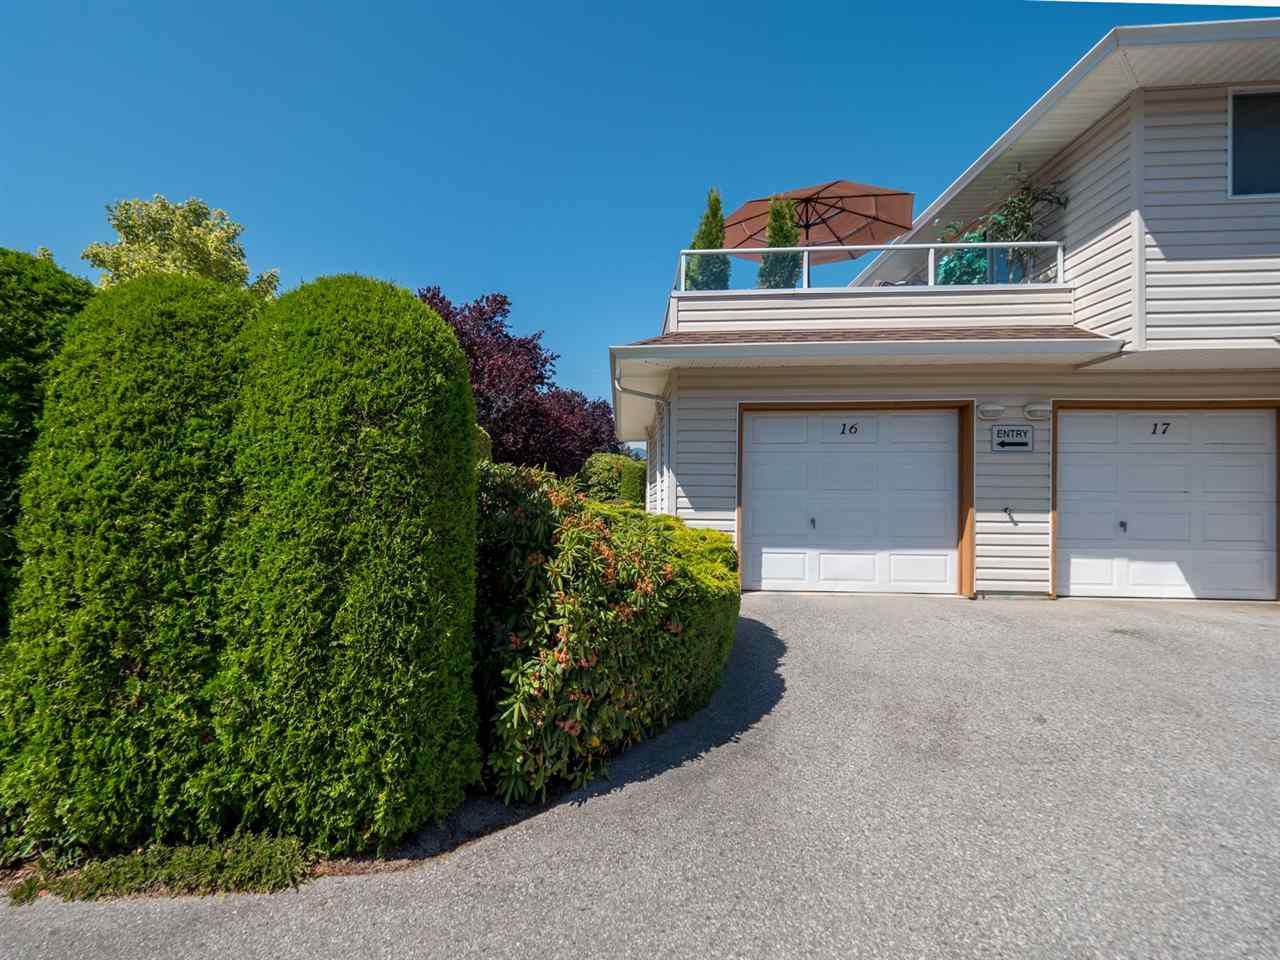 """Main Photo: 16 5630 TRAIL Avenue in Sechelt: Sechelt District Townhouse for sale in """"HIGHPOINT"""" (Sunshine Coast)  : MLS®# R2382780"""